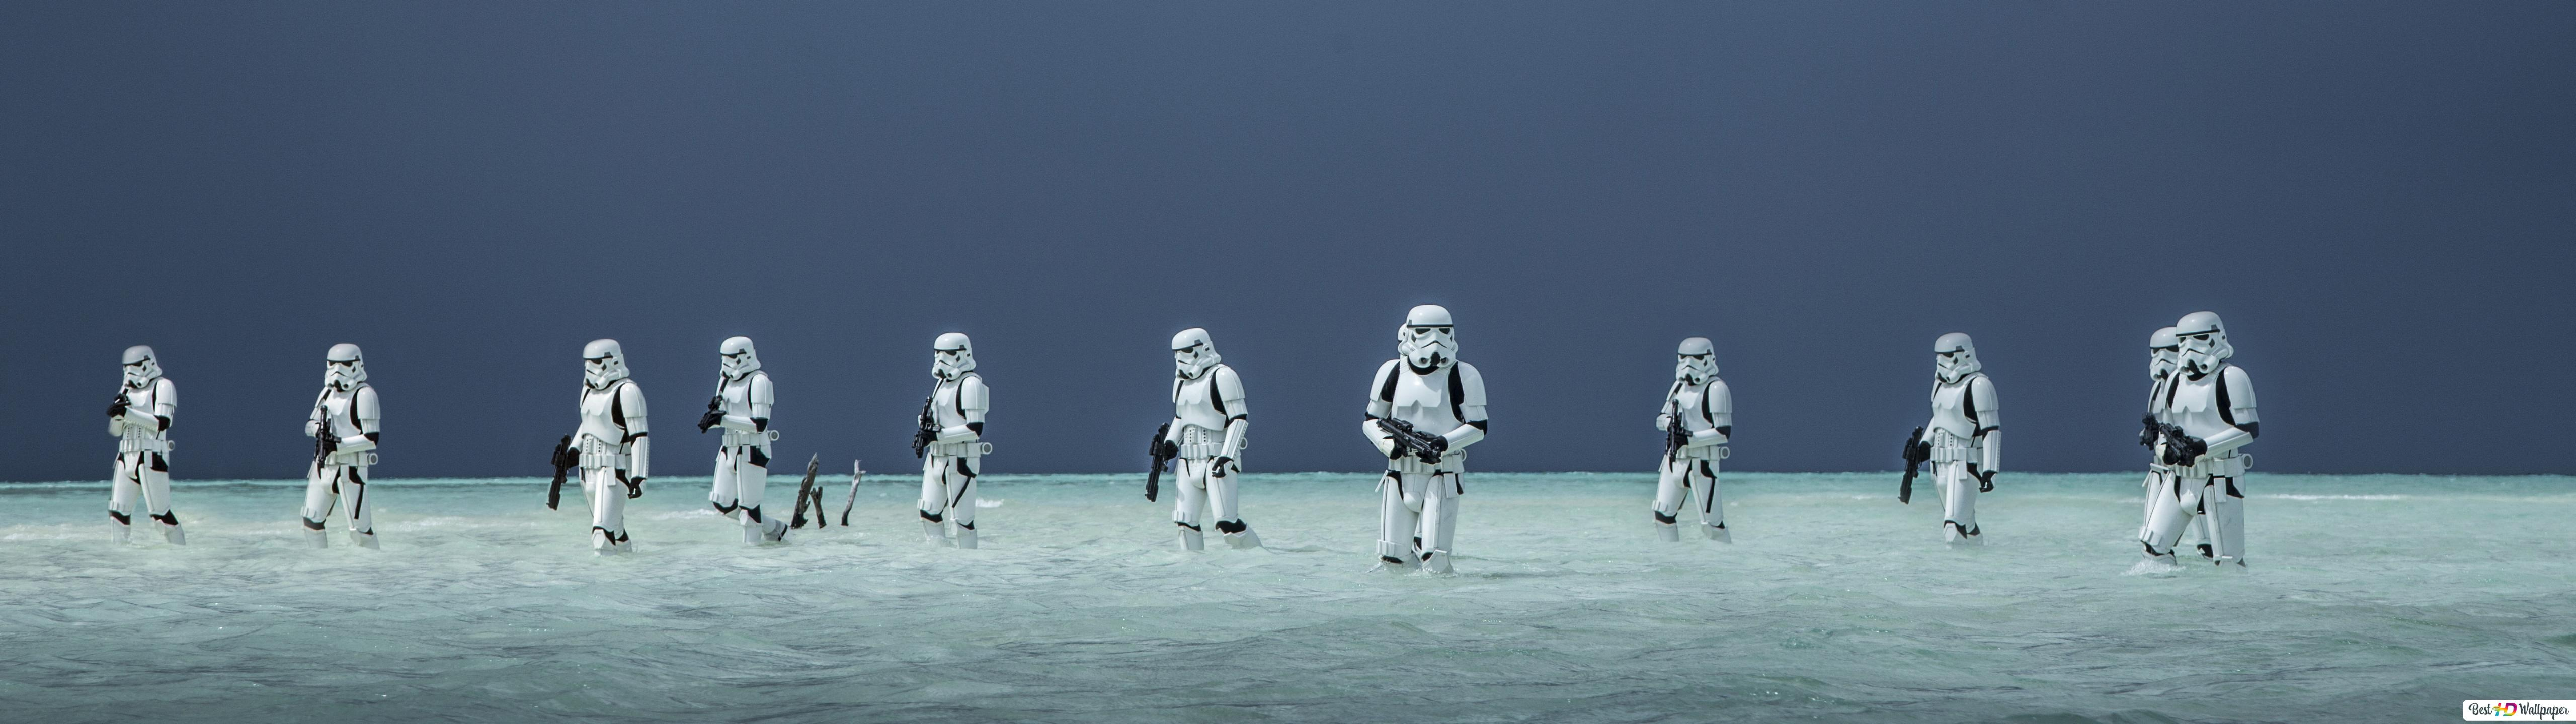 Storm Troopers Rogue One A Star Wars Story Hd Wallpaper Download